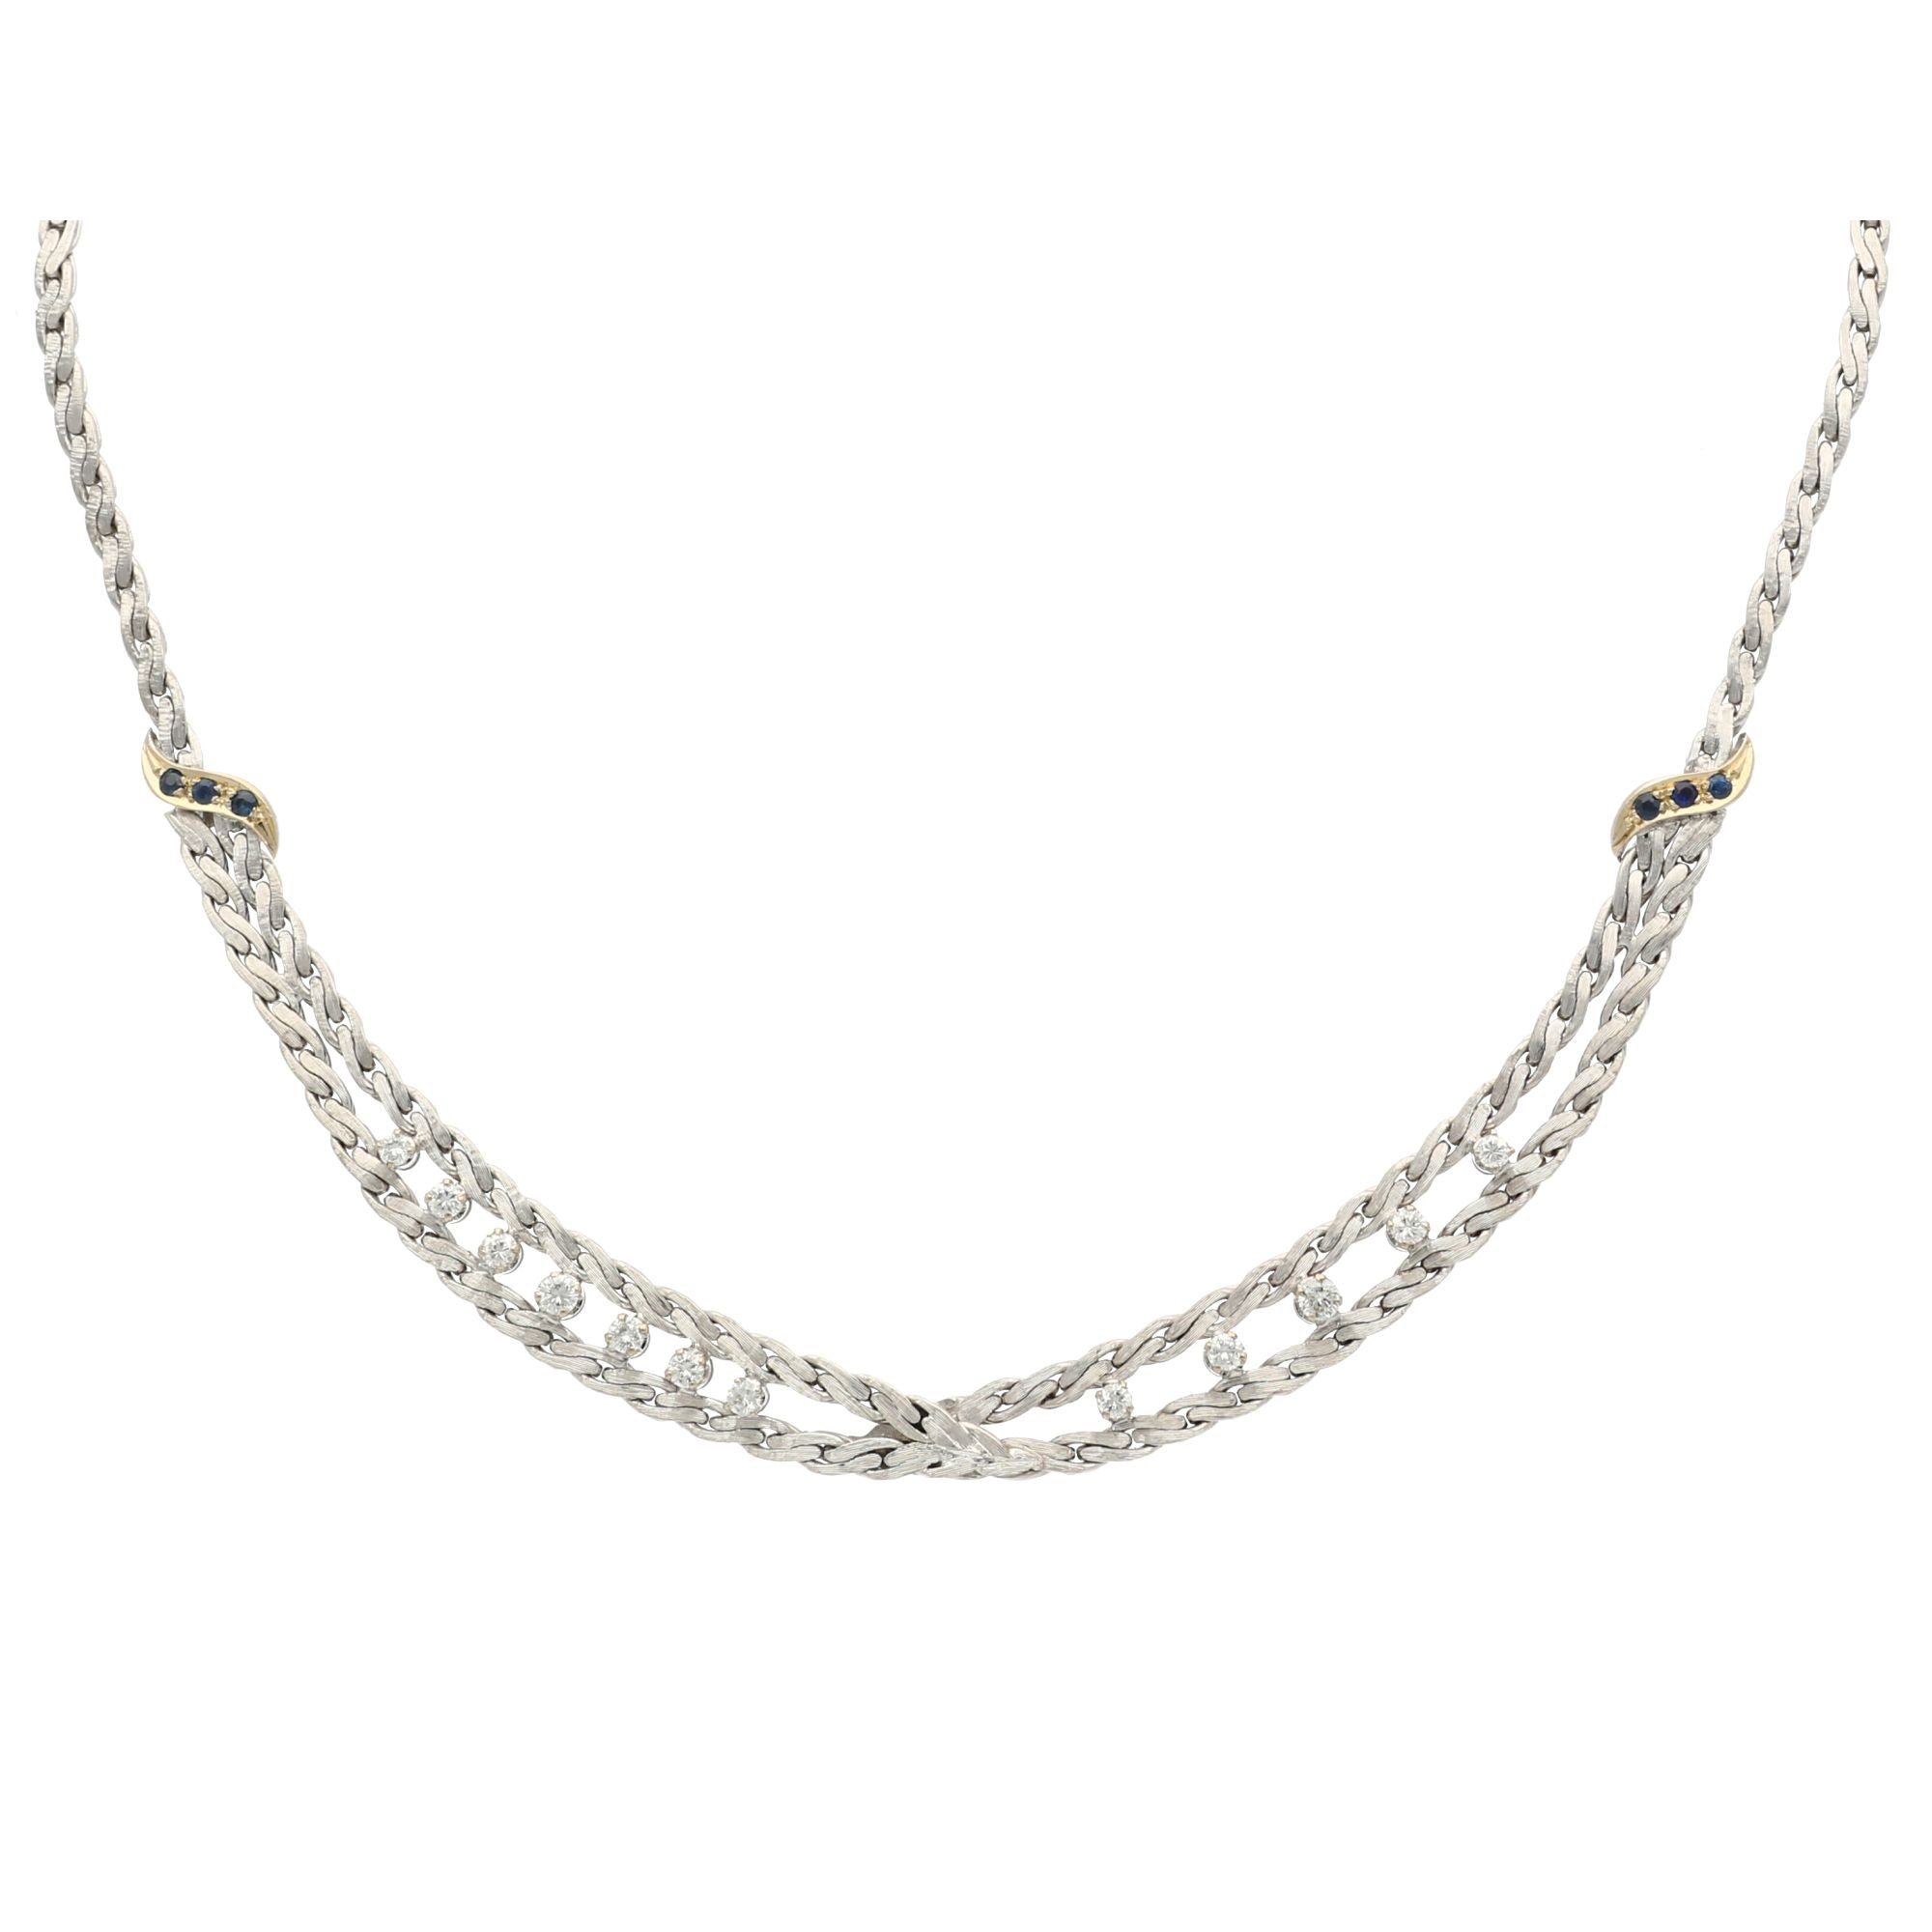 18ct White Gold Ladies Diamond & Sapphire Fancy Necklace 16 inches